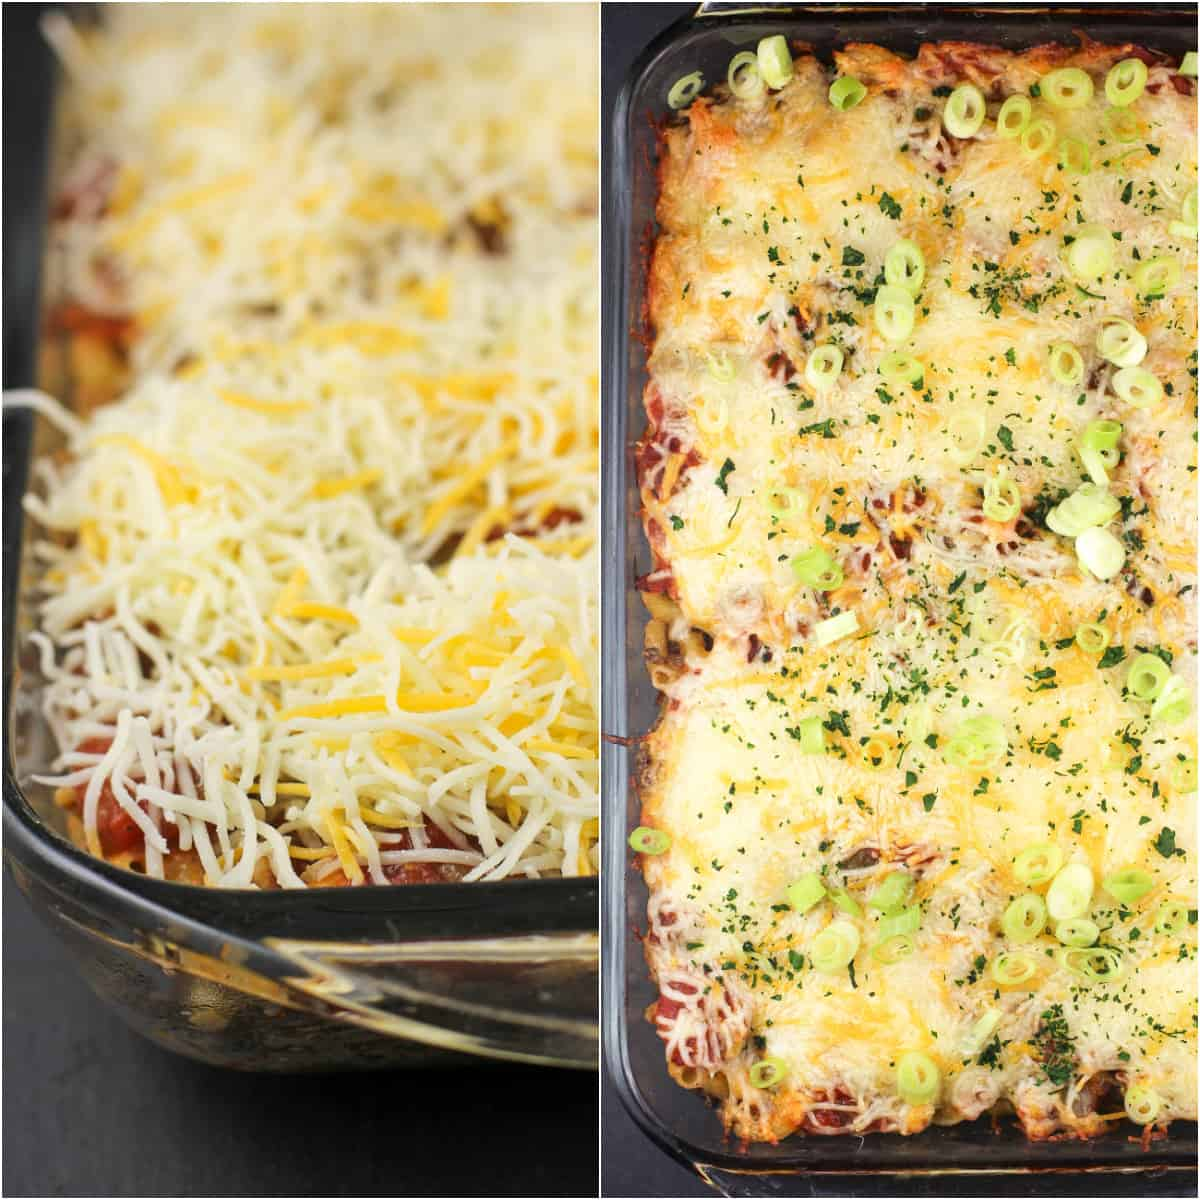 collage of 2 photos: left, cheese topped casserole; right, cooked casserole